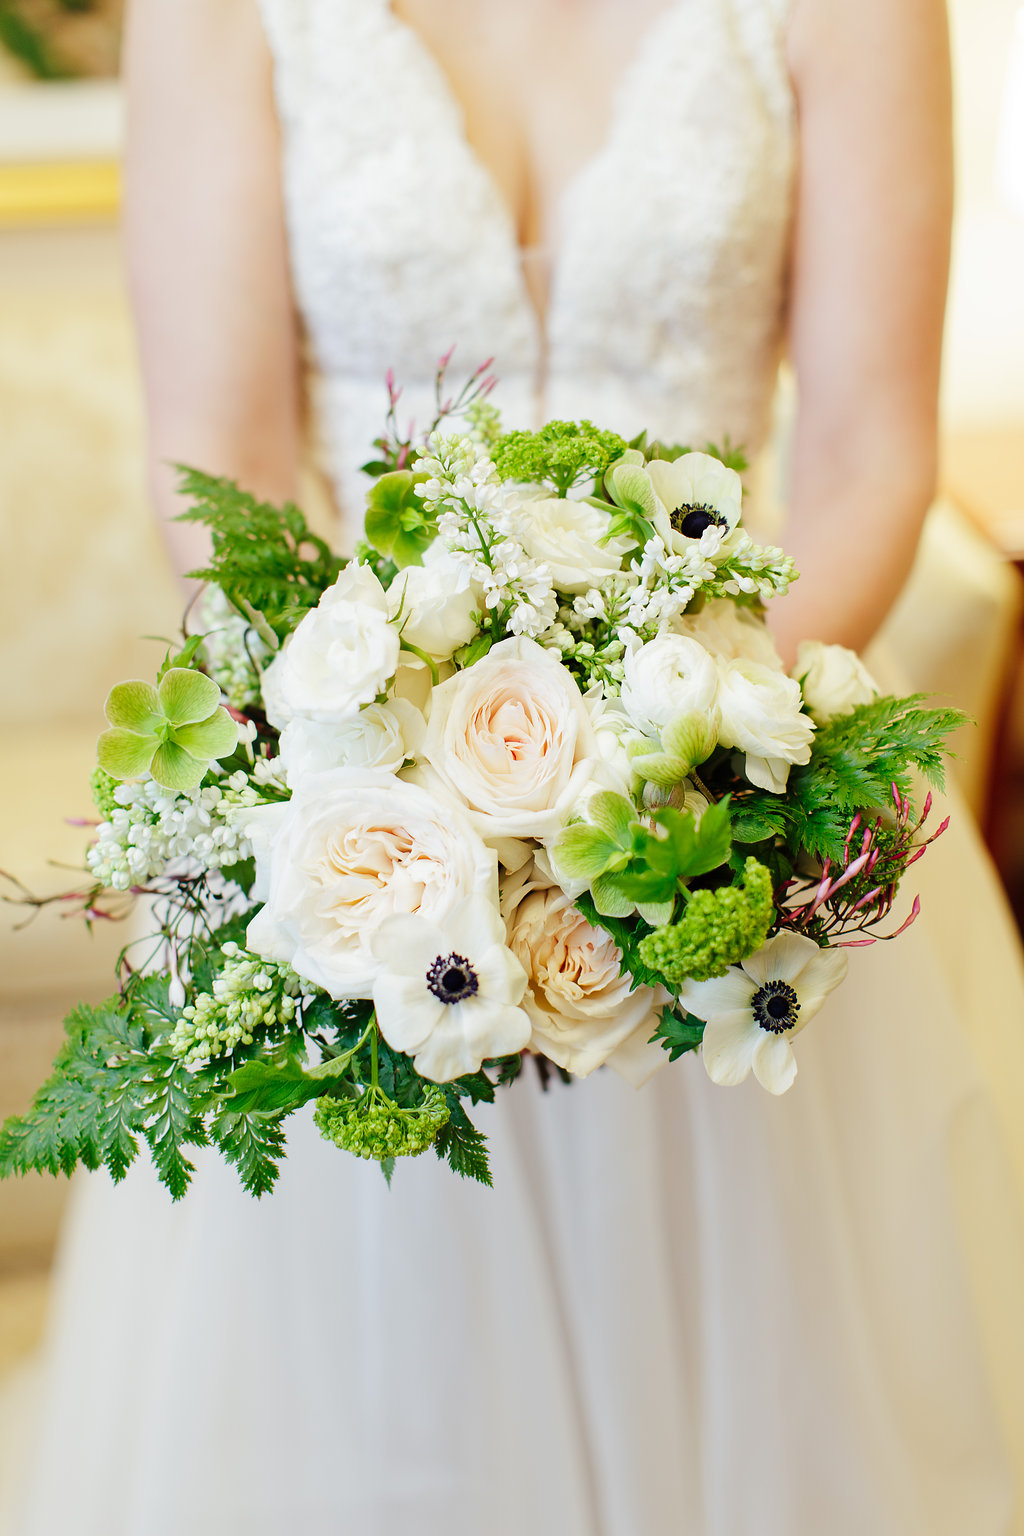 Green and Ivory bridal bouquet designed by Fleur Inc at the Union League Club in Chicago.  Photographed by Sarah Postma Photography.